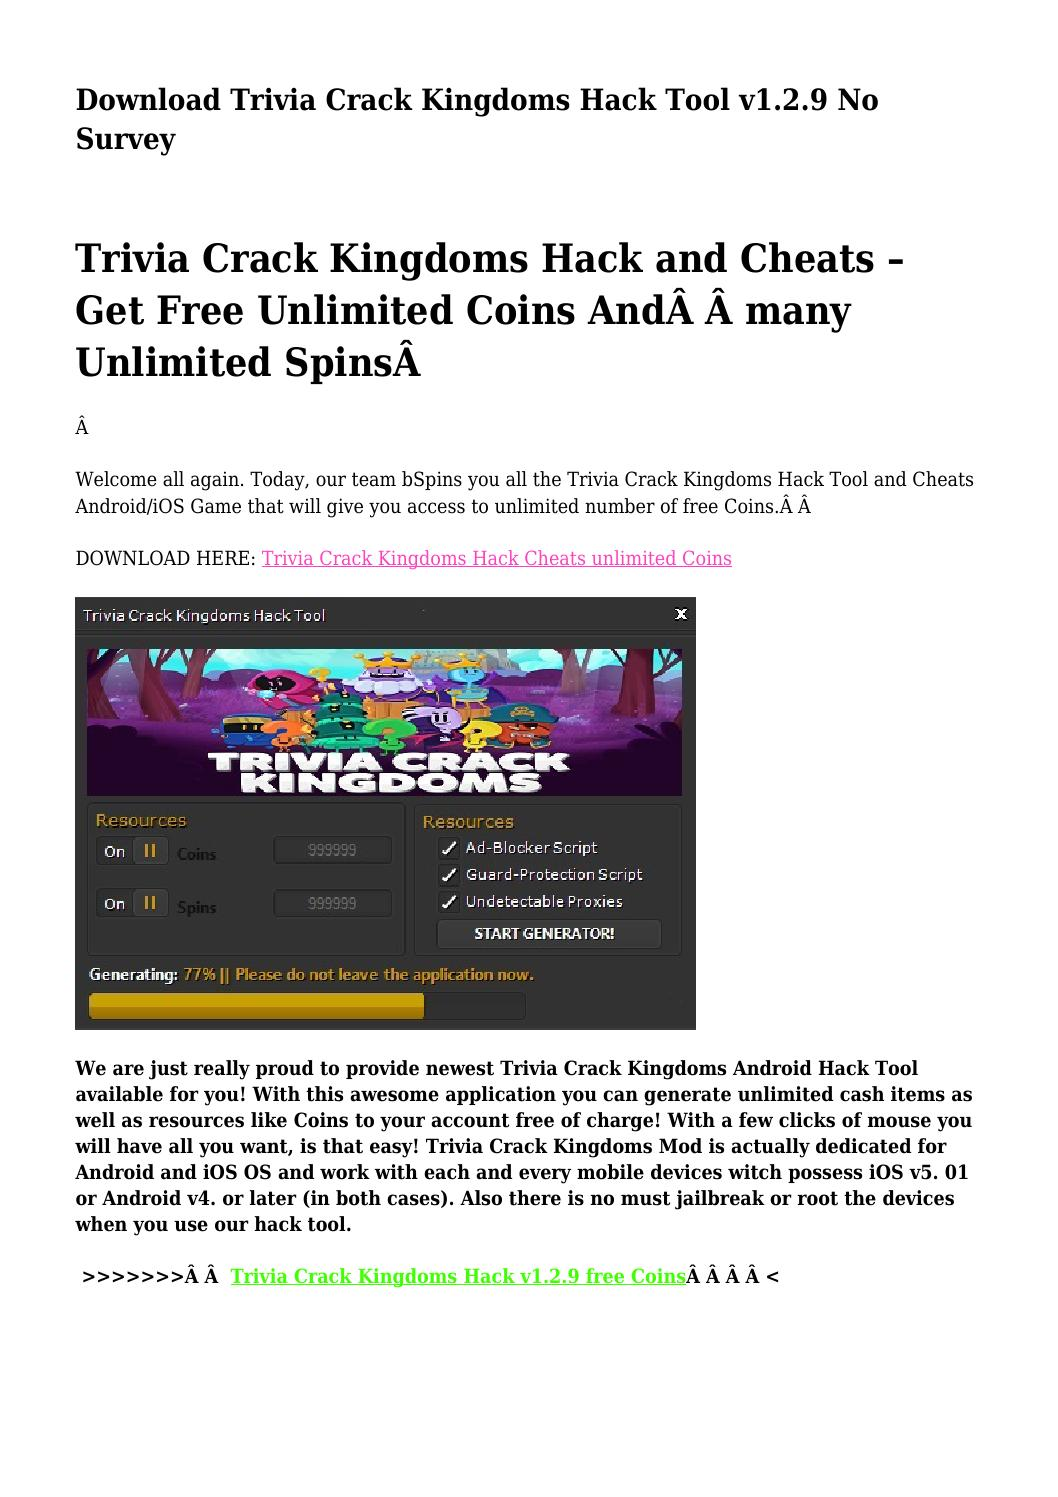 Download Trivia Crack Kingdoms Hack Tool v1 2 9 No Survey by